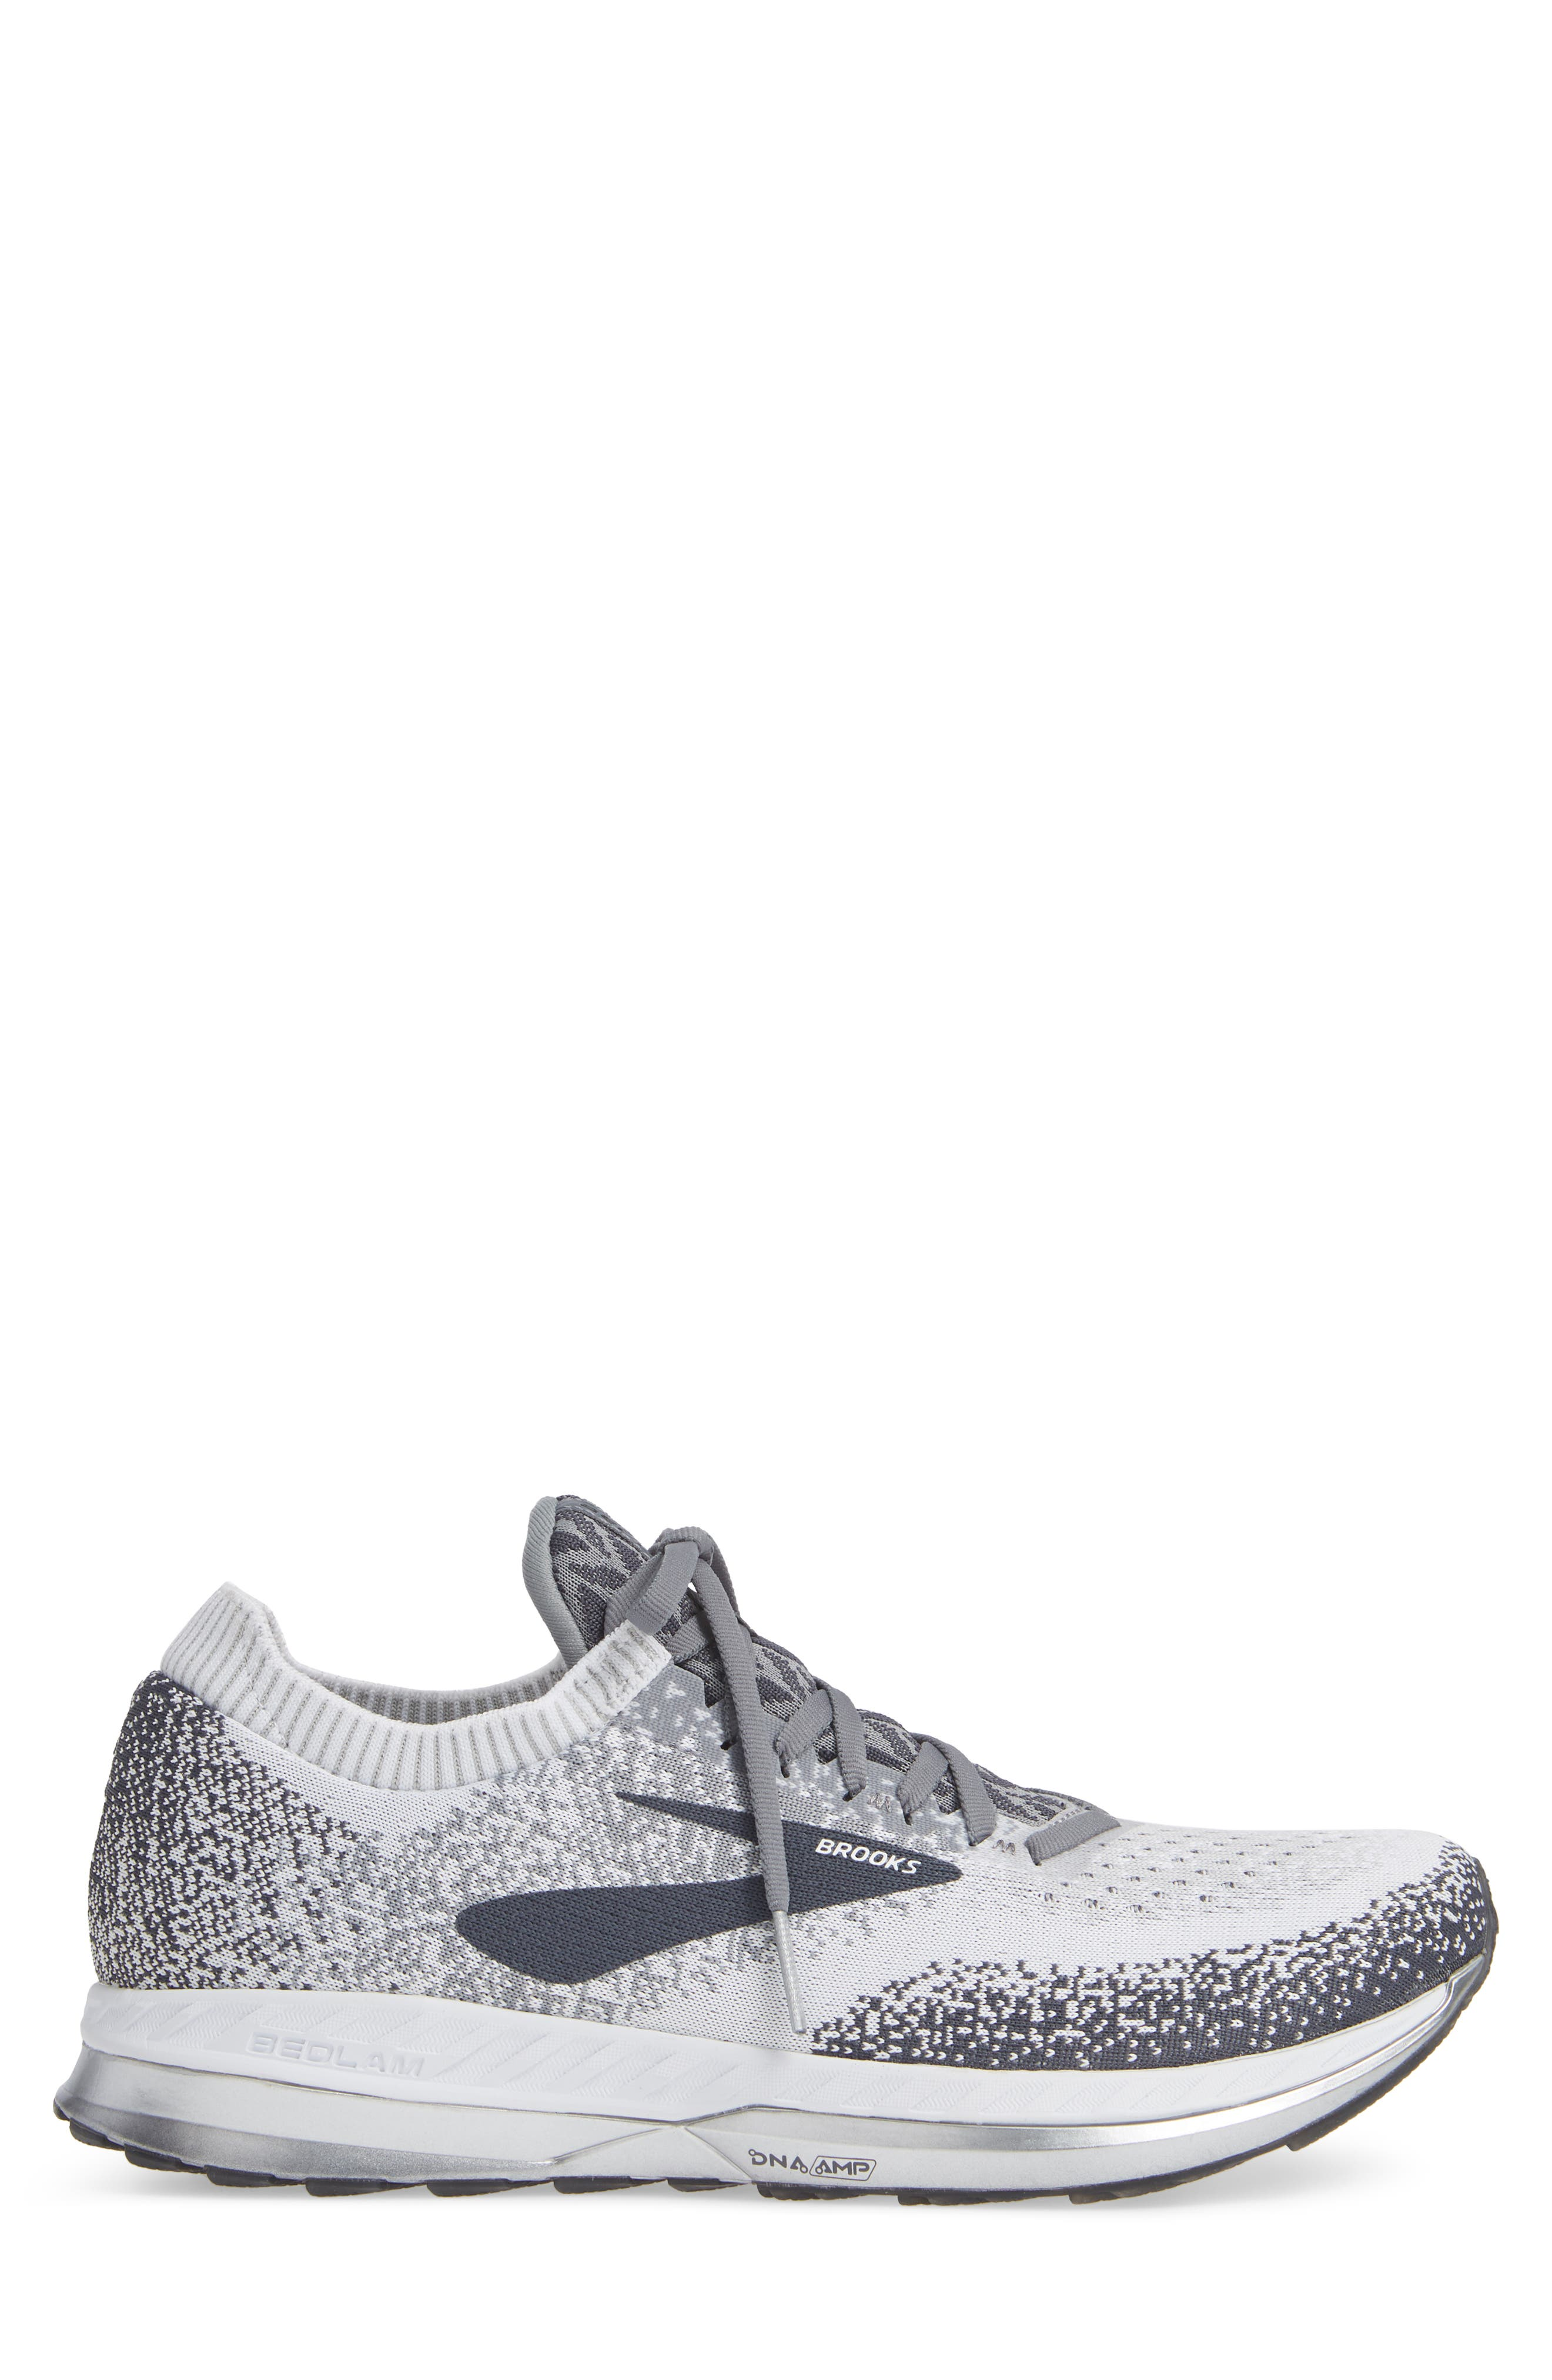 Bedlam Running Shoe,                             Alternate thumbnail 3, color,                             GREY/ WHITE/ EBONY